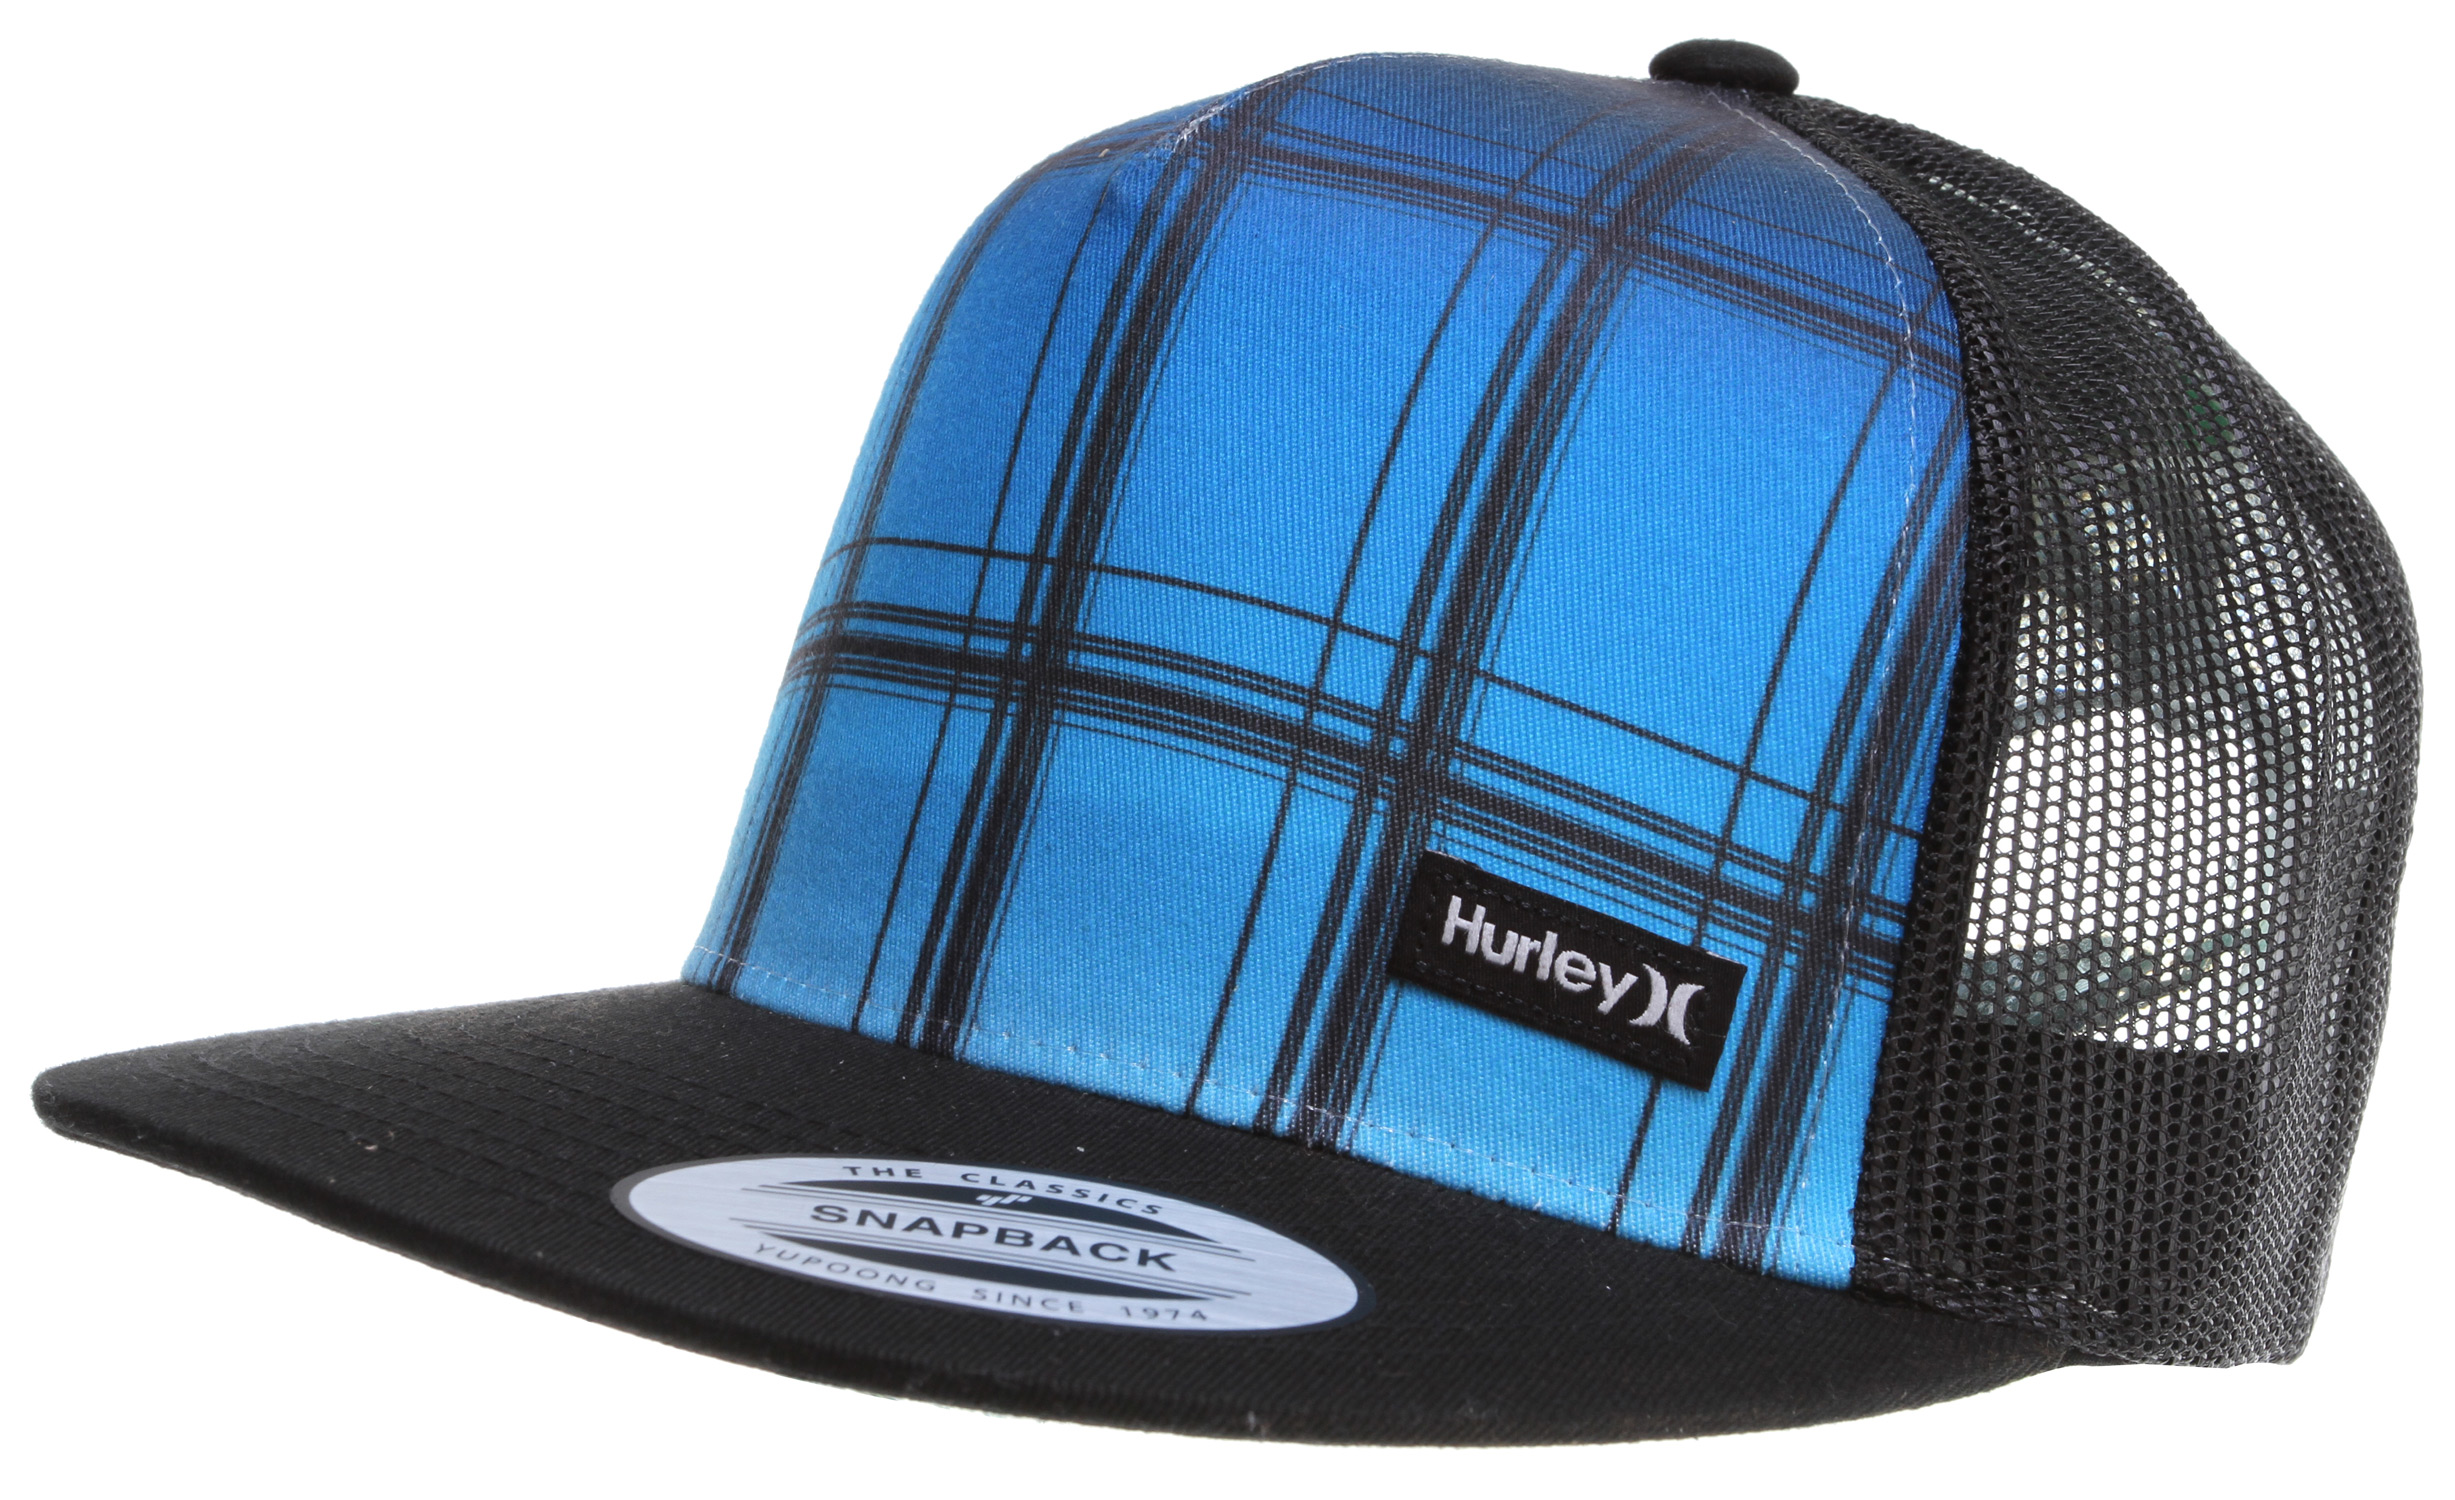 Surf Key Features of the Hurley Trunks Trucker Cap: 5 Panel Snapback Trucker 60% Polyester/40% Nylon Sublimated crown with mesh back. - $14.95